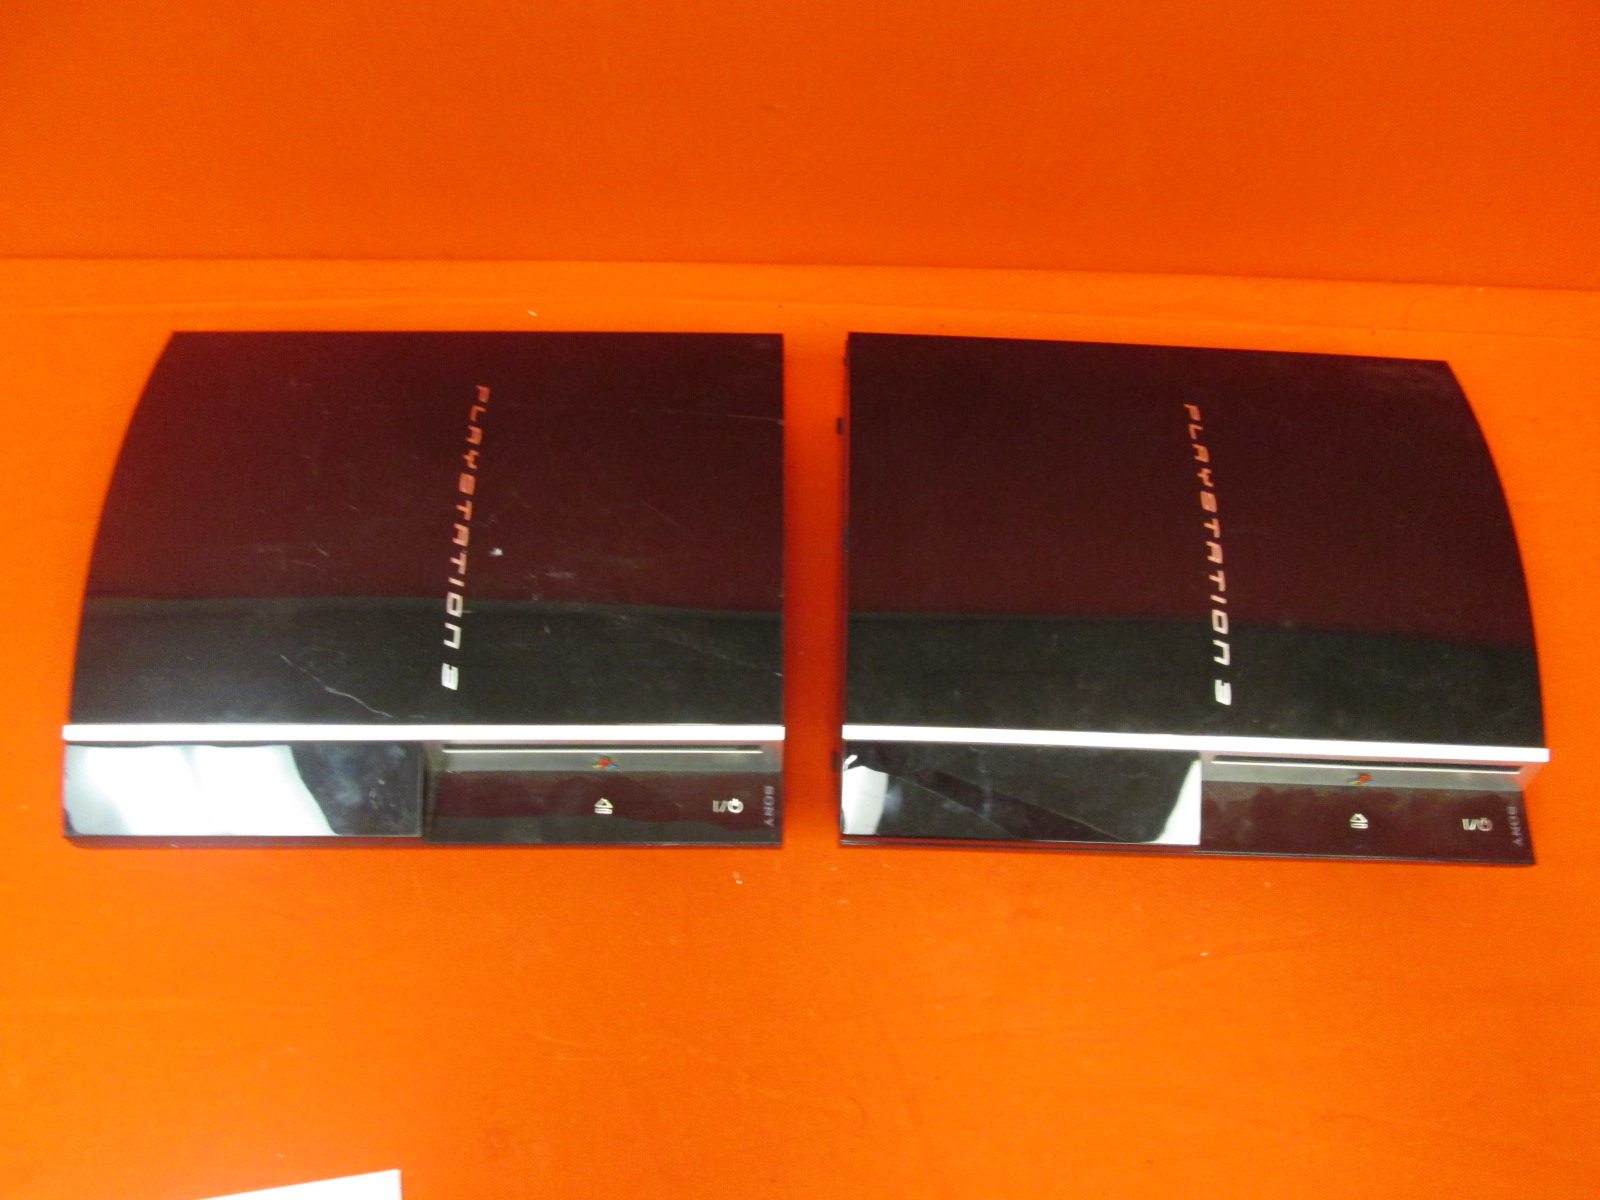 Broken Lot Of 2 Sony PlayStation 3 CECHG01 40GB Consoles Only: